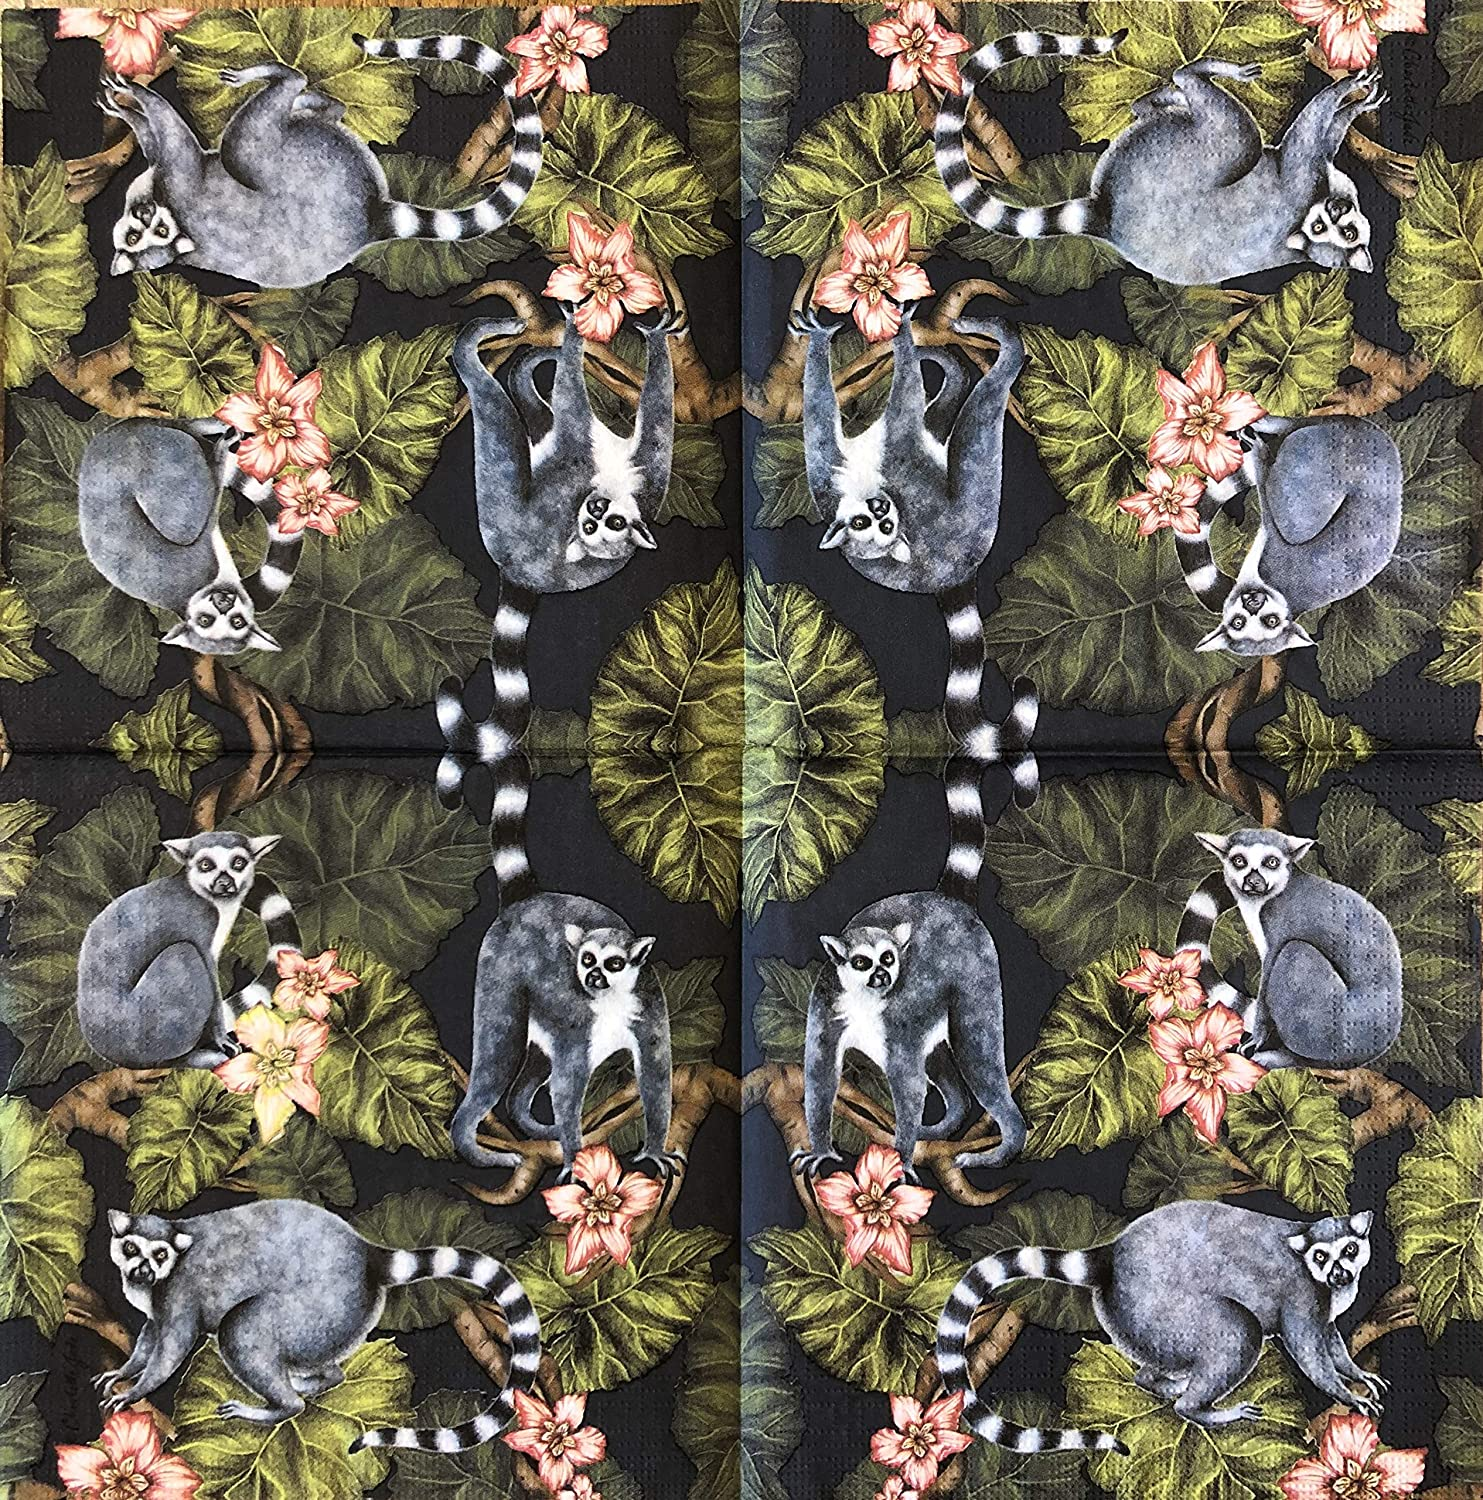 2 single Paper Napkins for DECOUPAGE Crafts Collection Party Macaco Lemur Asia Animals Wild Nature